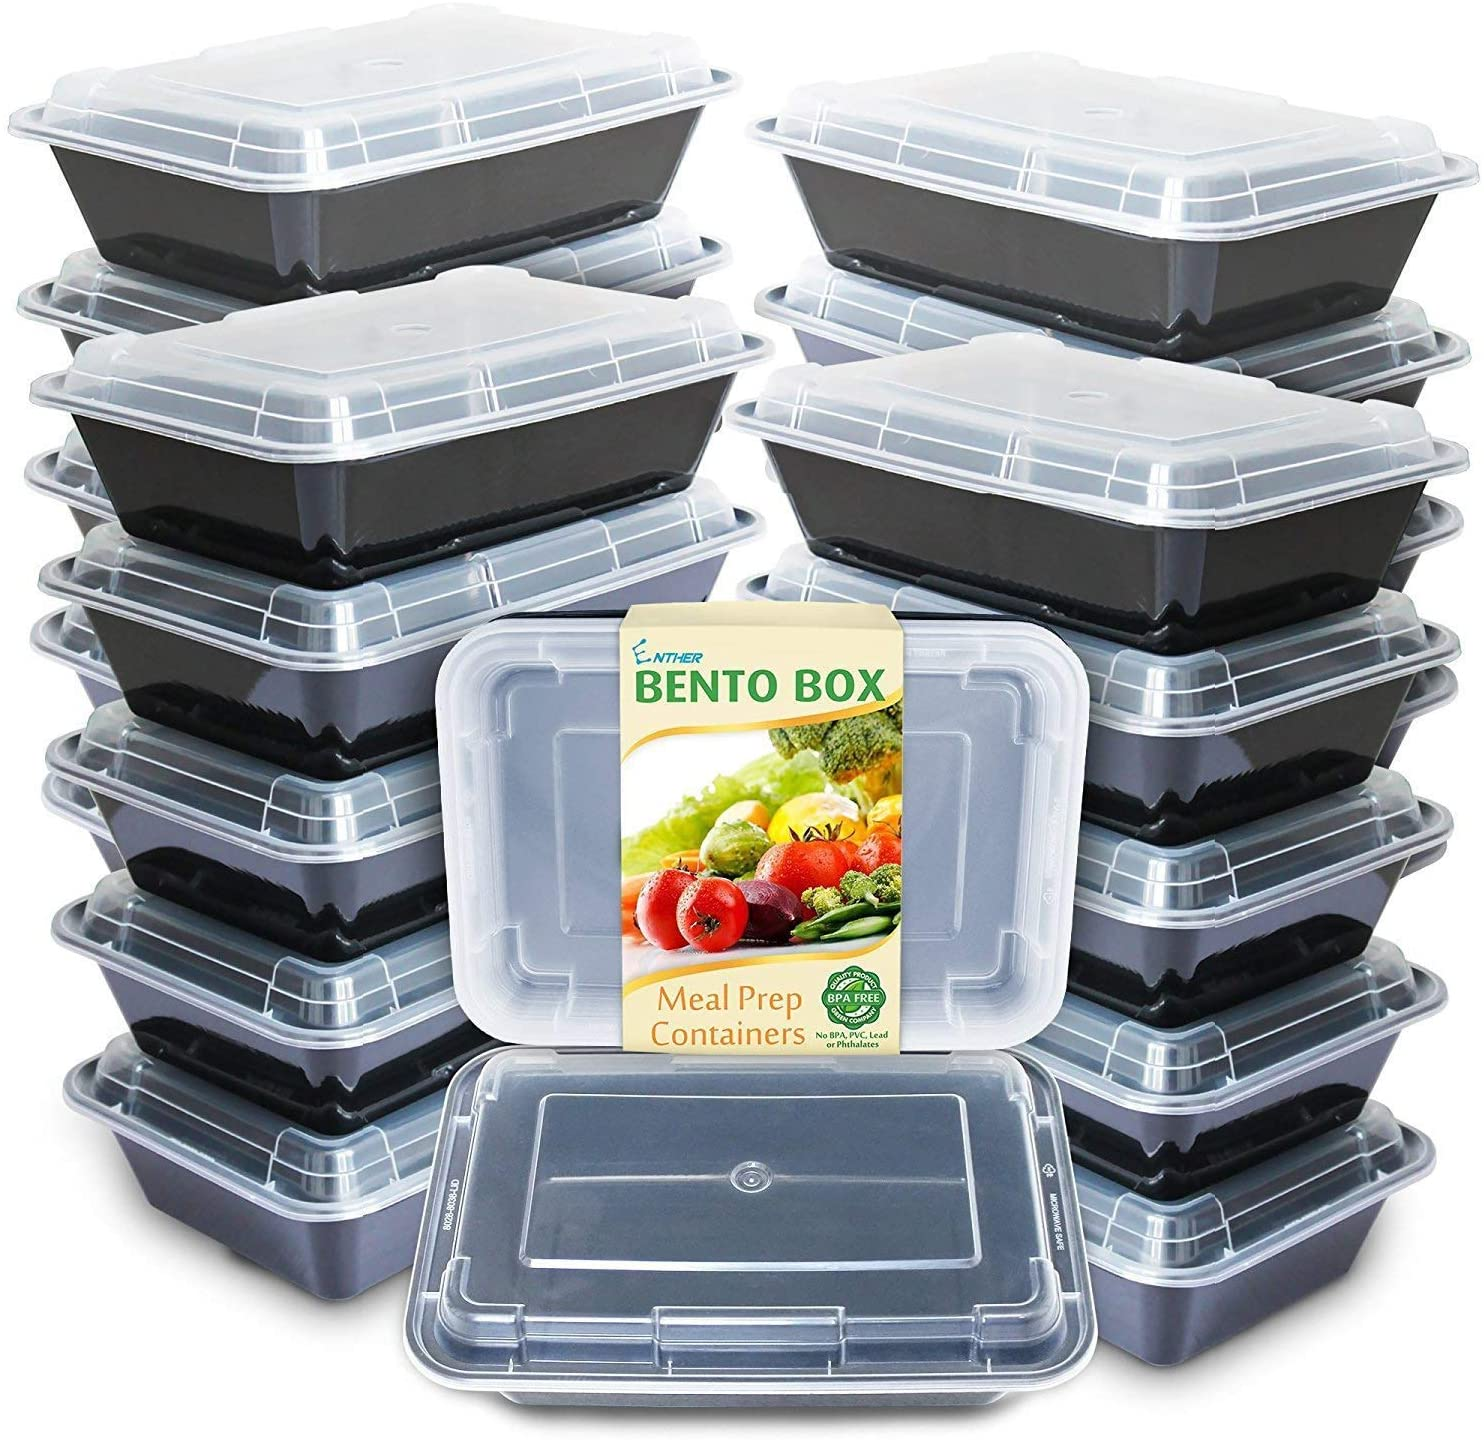 Enther Meal Prep Containers Microwave Safe / Positive review given by 12K users